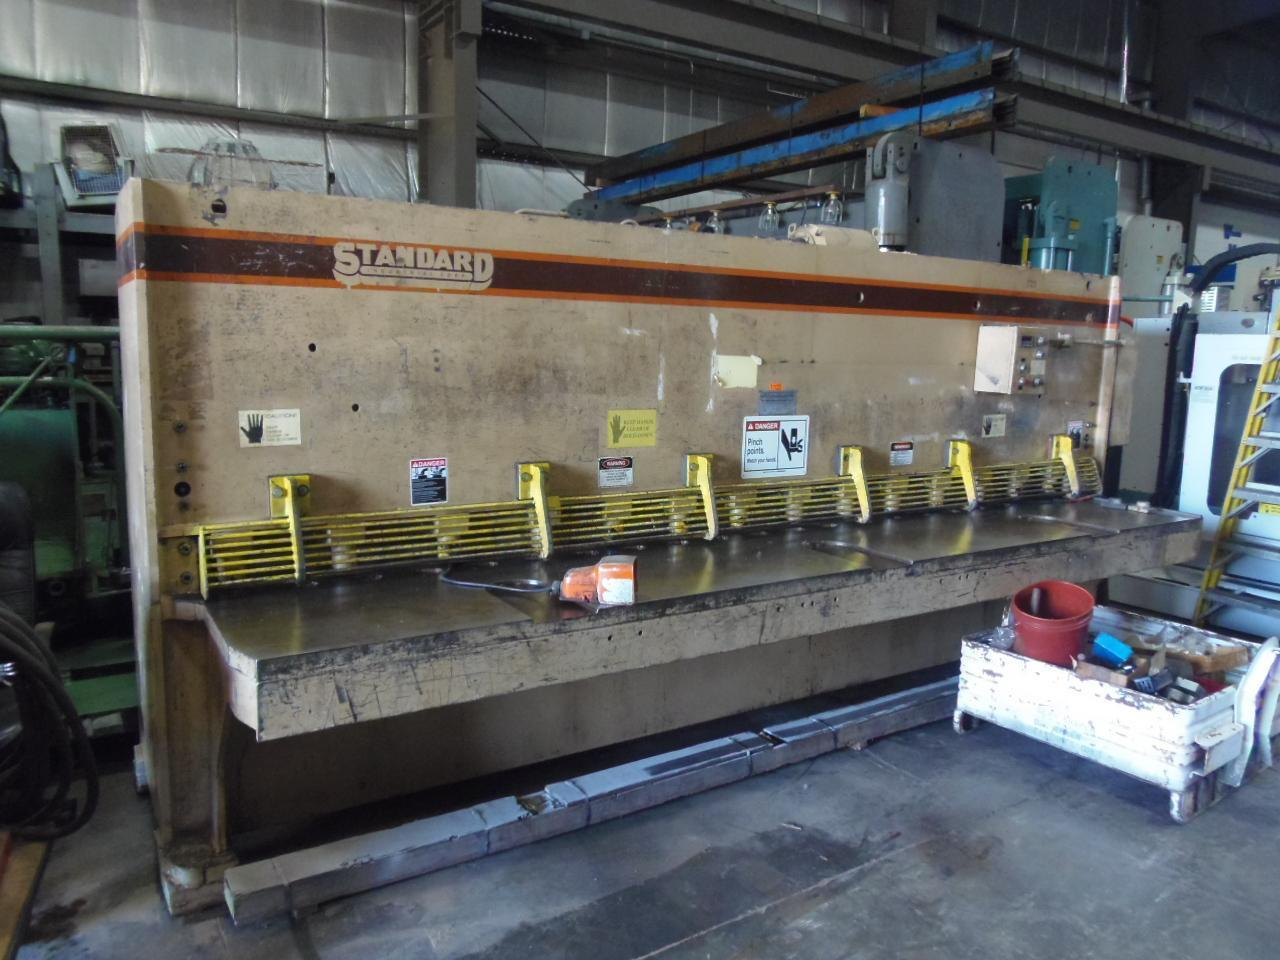 """1/4"""" X 14' STANDARD HYDRAULIC SHEAR AS250-14, NEW 1993, FRONT OPERATED POWER BACK GAUGE, FLUSH FLOOR"""